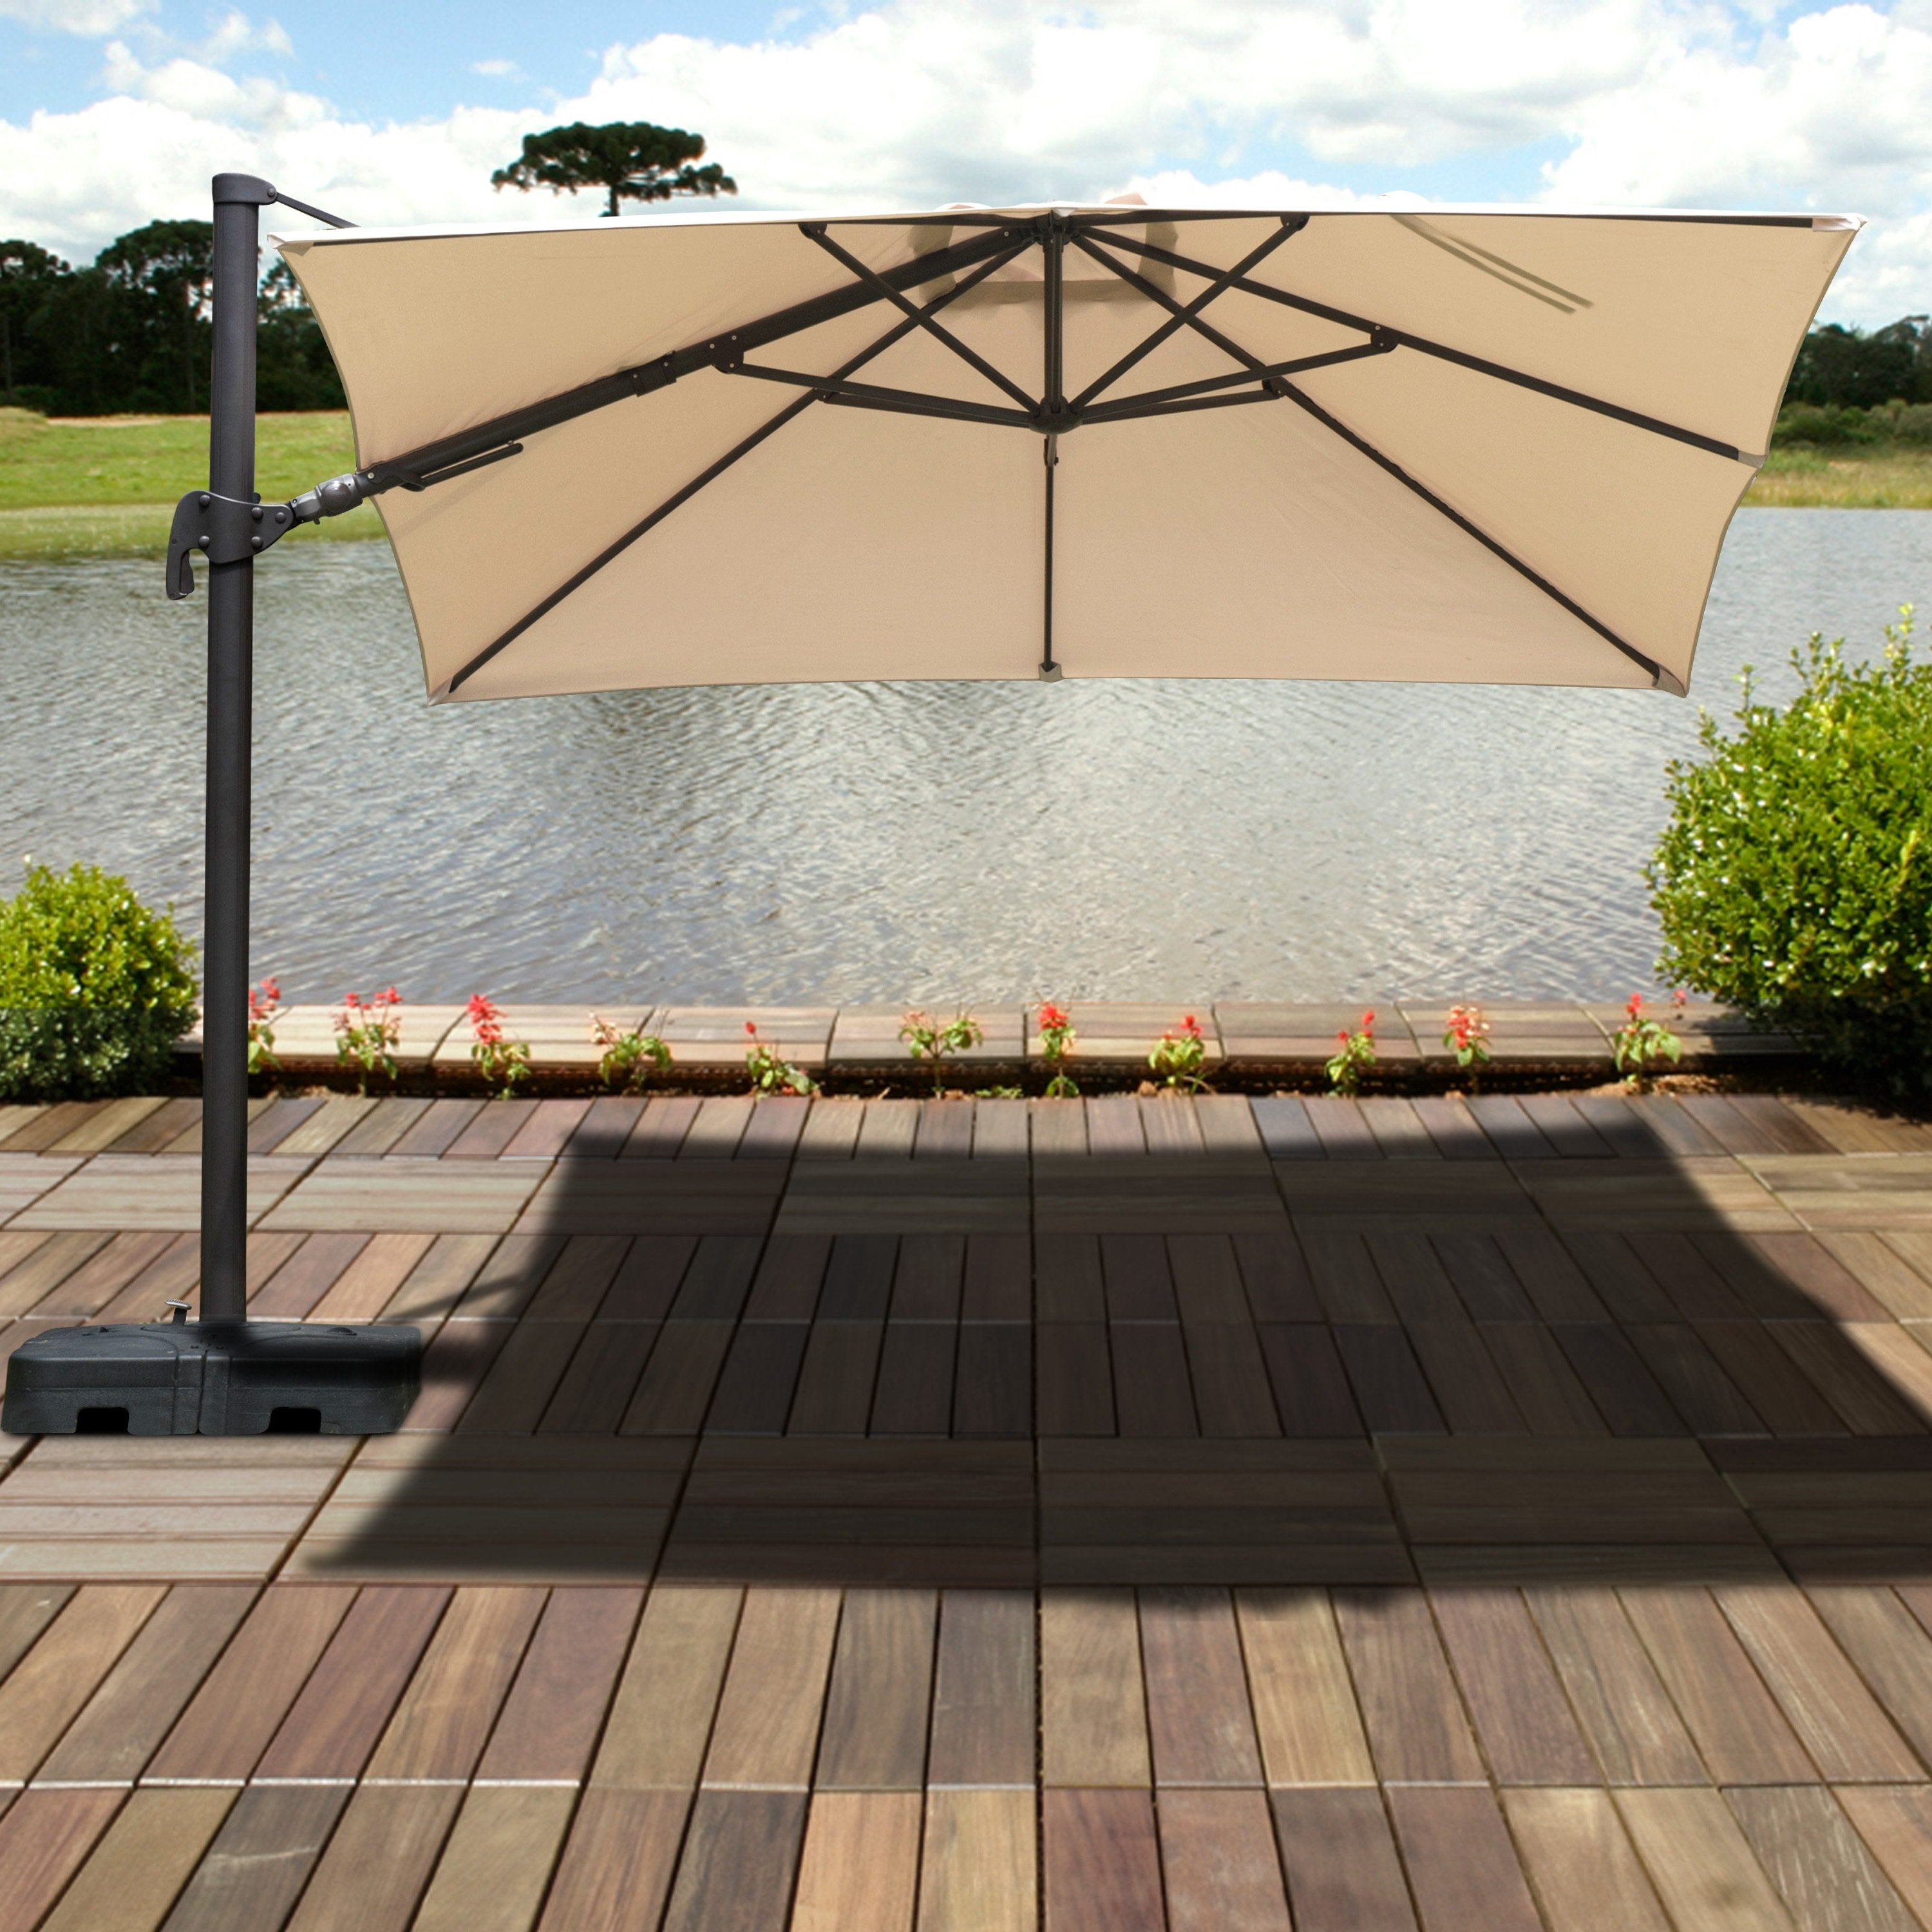 Gemmenne 10' Square Cantilever Umbrella With Regard To Well Liked Tallulah Sunshade Hanging Outdoor Cantilever Umbrellas (Gallery 18 of 20)